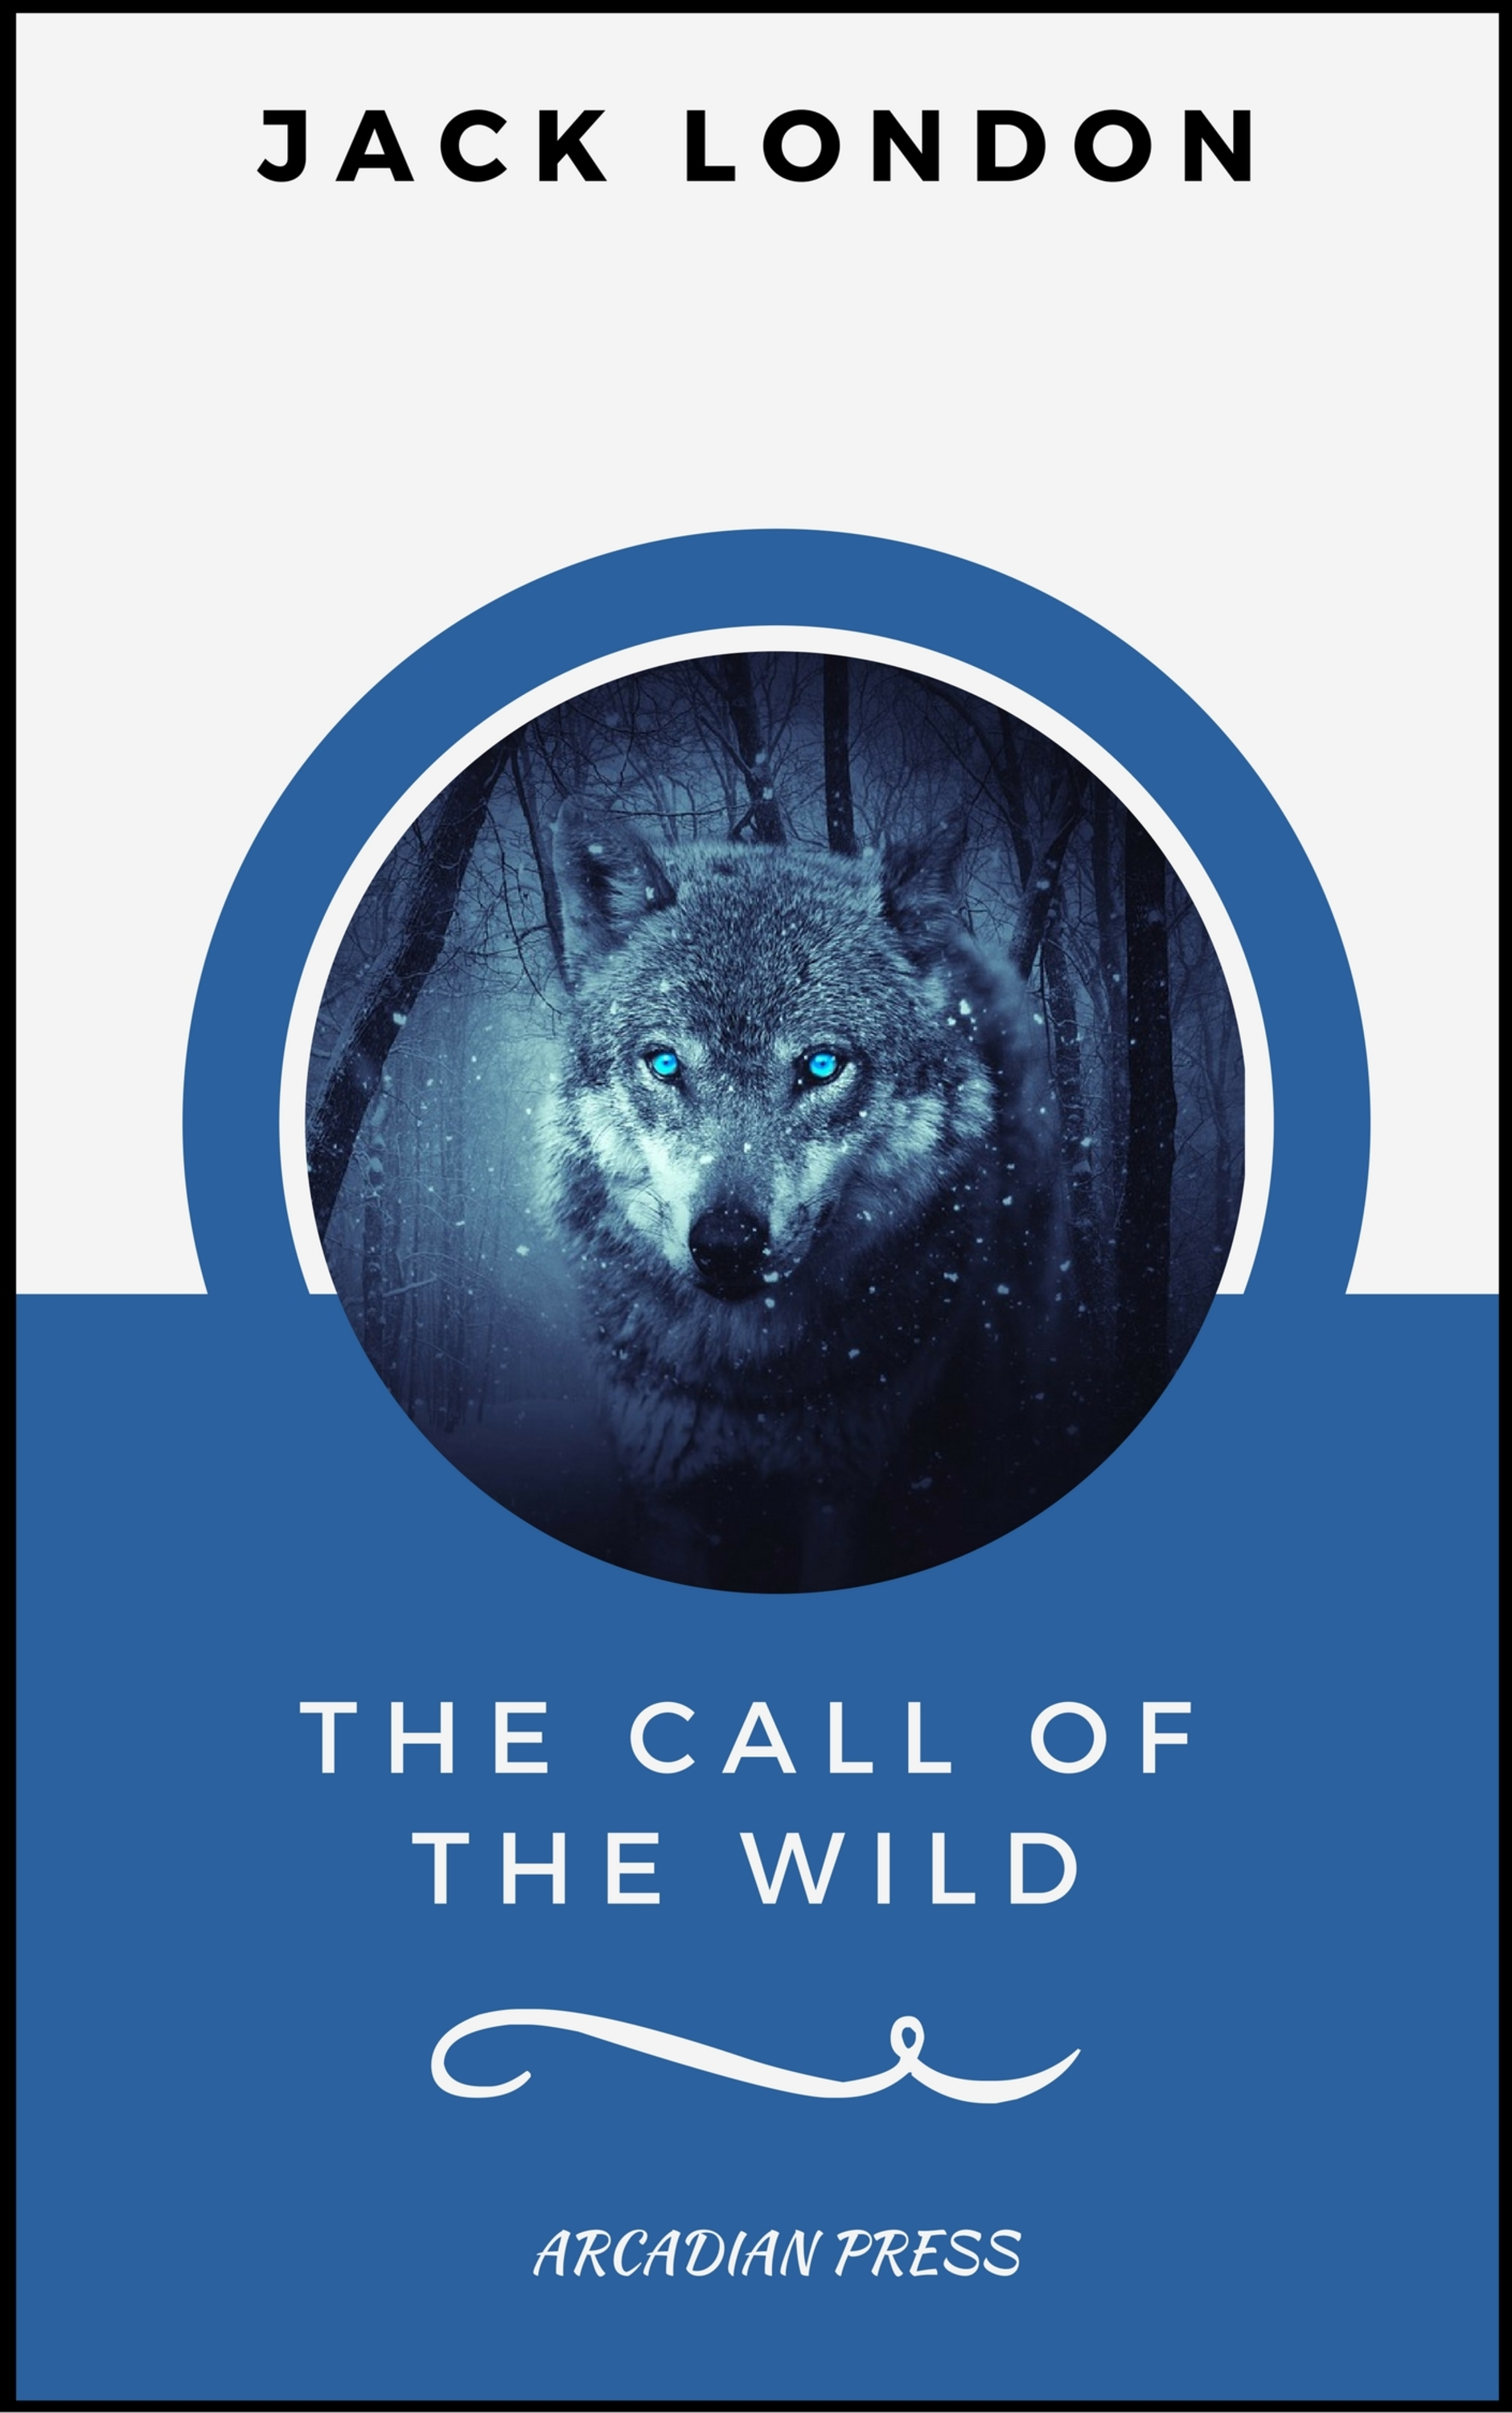 the call of the wild arcadianpress edition